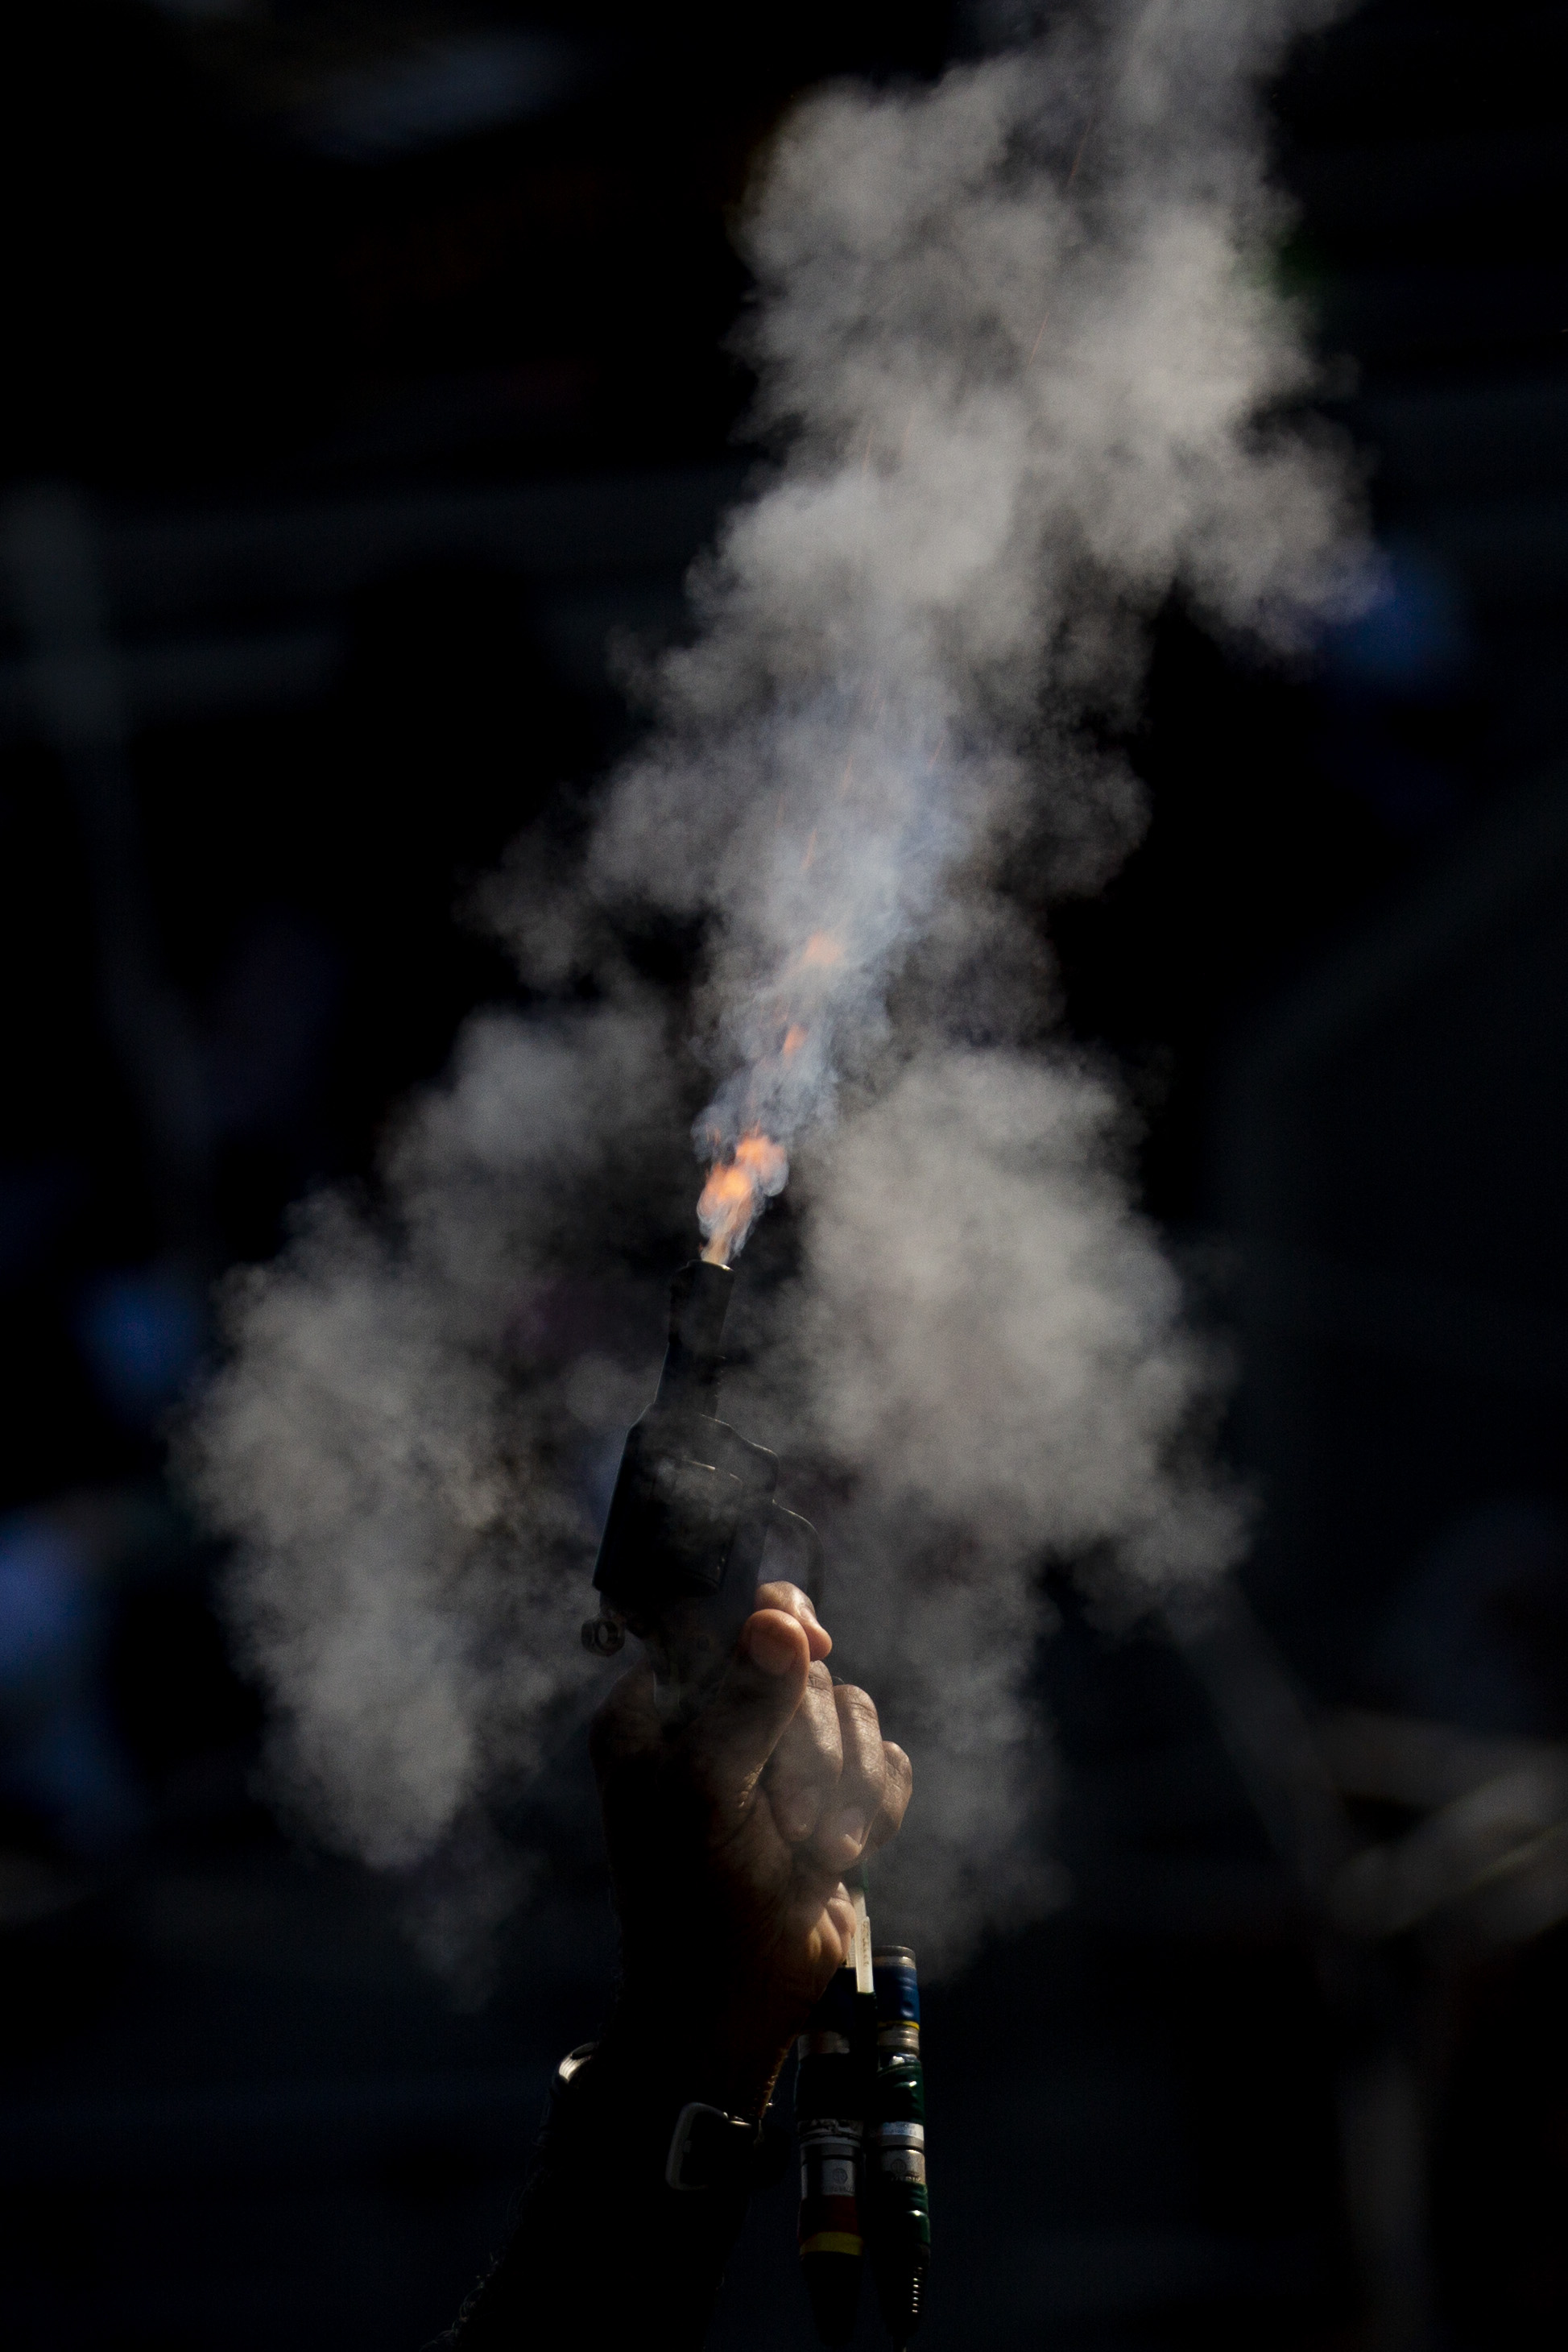 A starting gun is fired during the AAU Junior Olympic Games at Drake Stadium in Des Moines, Iowa August 2, 2018.